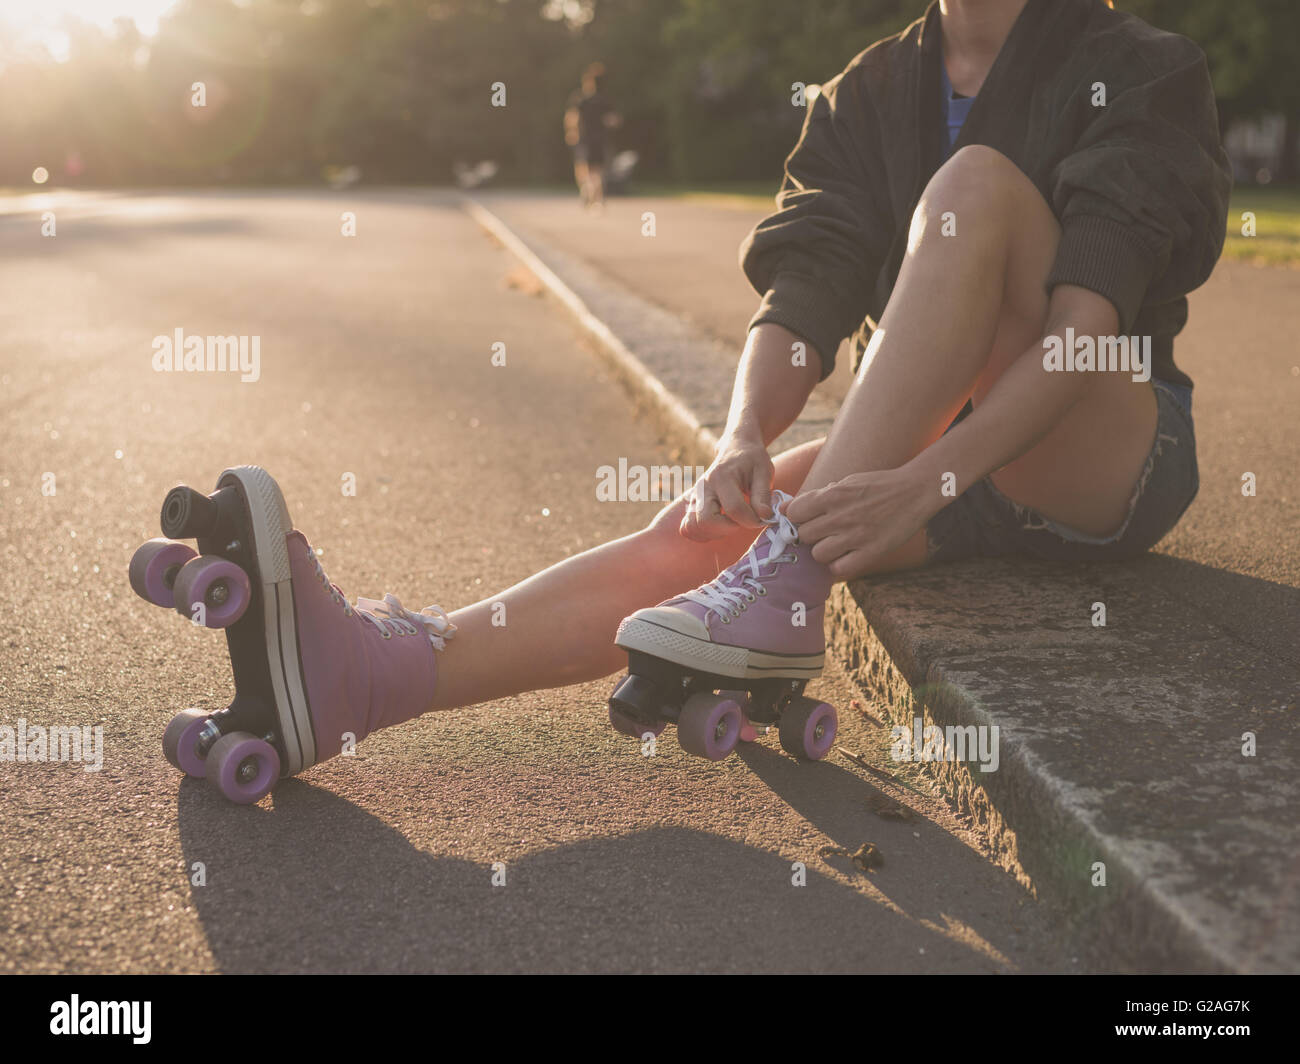 A young woman is sitting on the ground and is putting on roller skates in the park at sunset - Stock Image